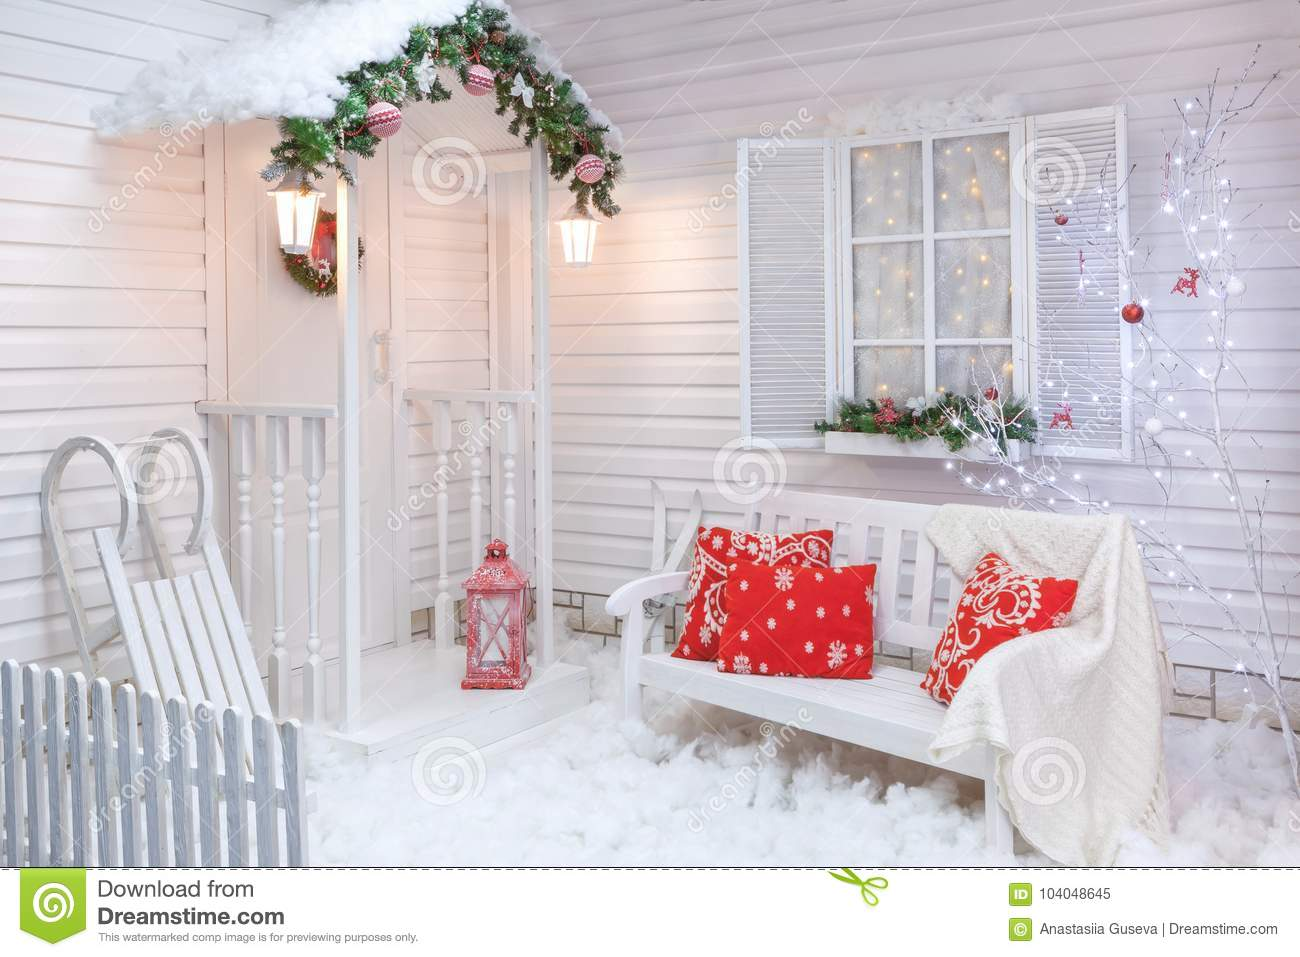 Surprising Winter Exterior Of A Country House With Christmas Gmtry Best Dining Table And Chair Ideas Images Gmtryco